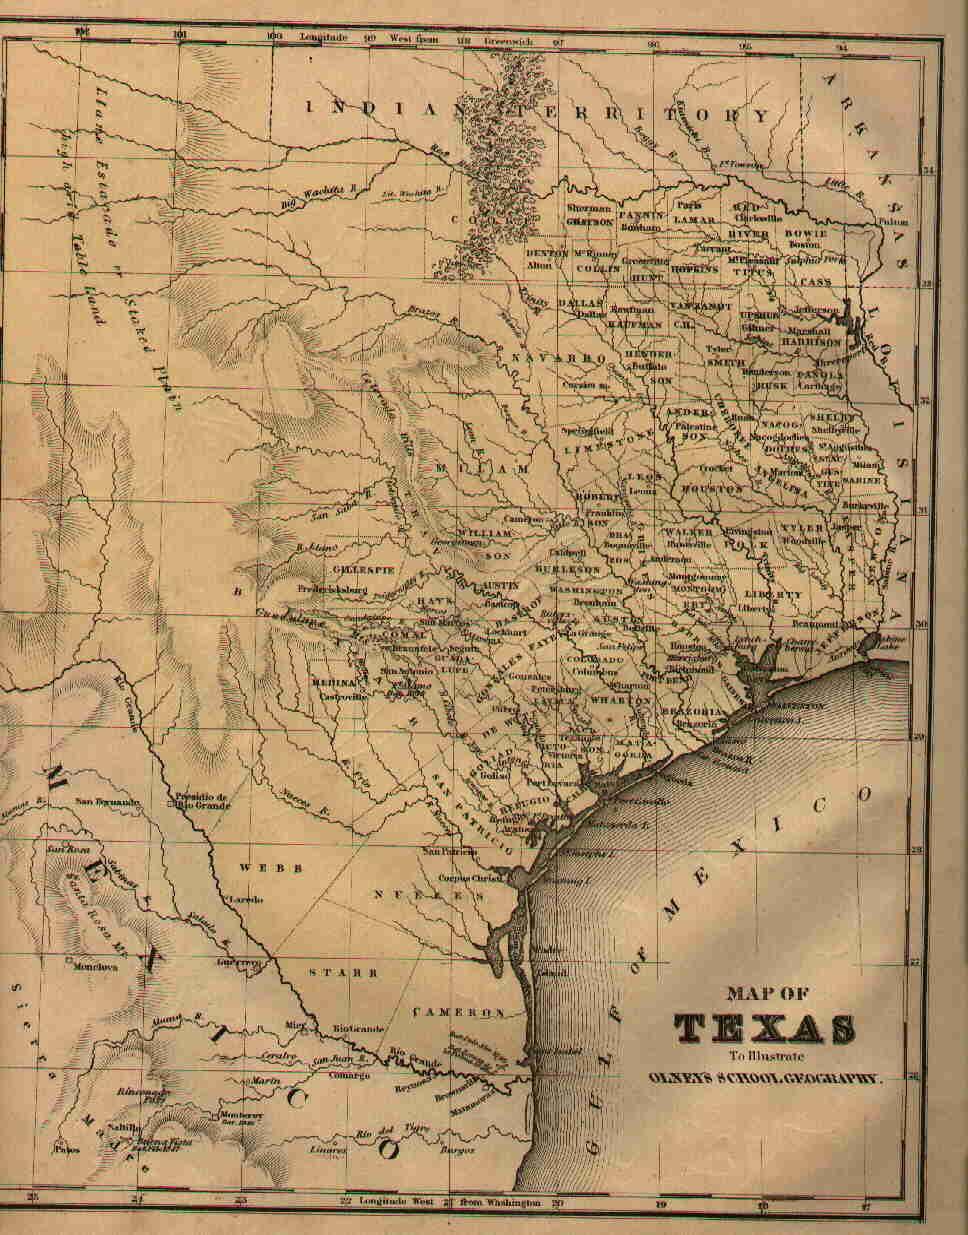 Texas Maps Texas Digital Map Library Table Of Contents United - Map of tex